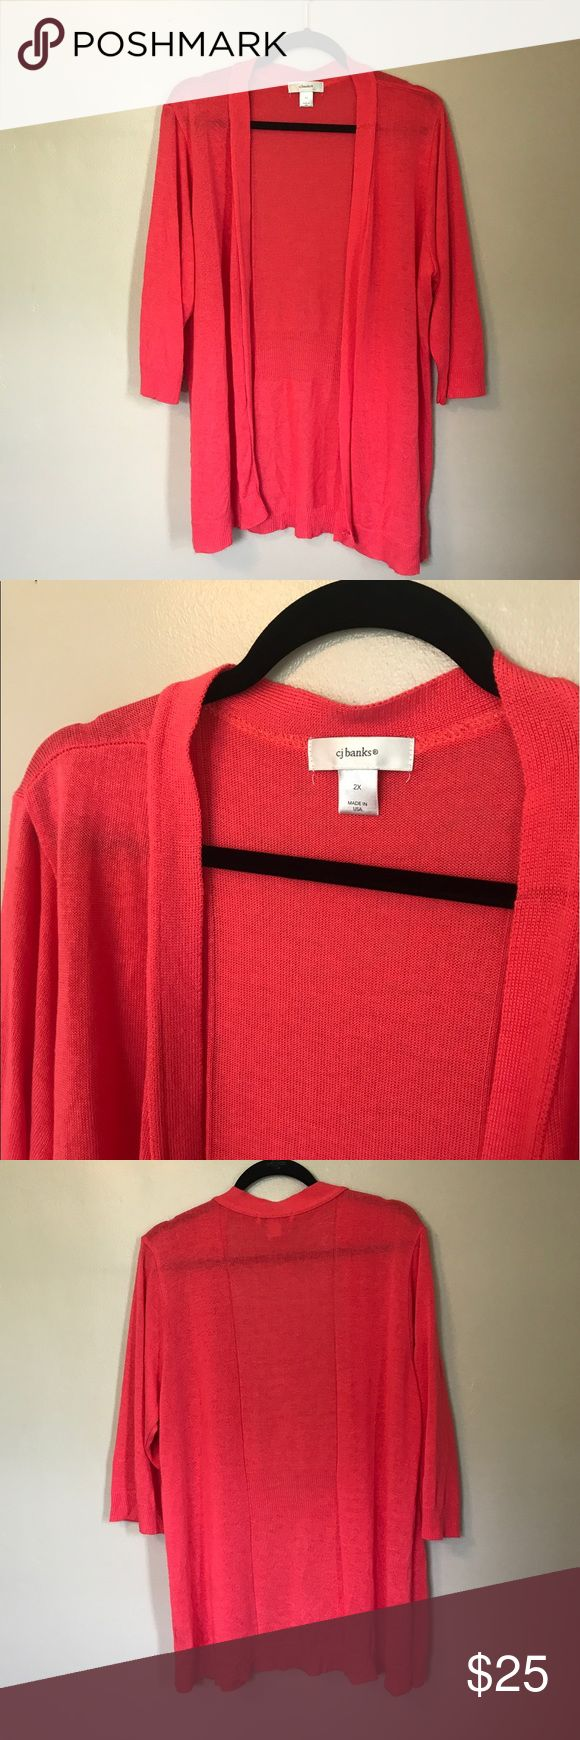 CJ Banks Coral Sweater Cardigan 2X Plus Great condition. Smoke free, pet friendly home. Christopher & Banks Sweaters Cardigans